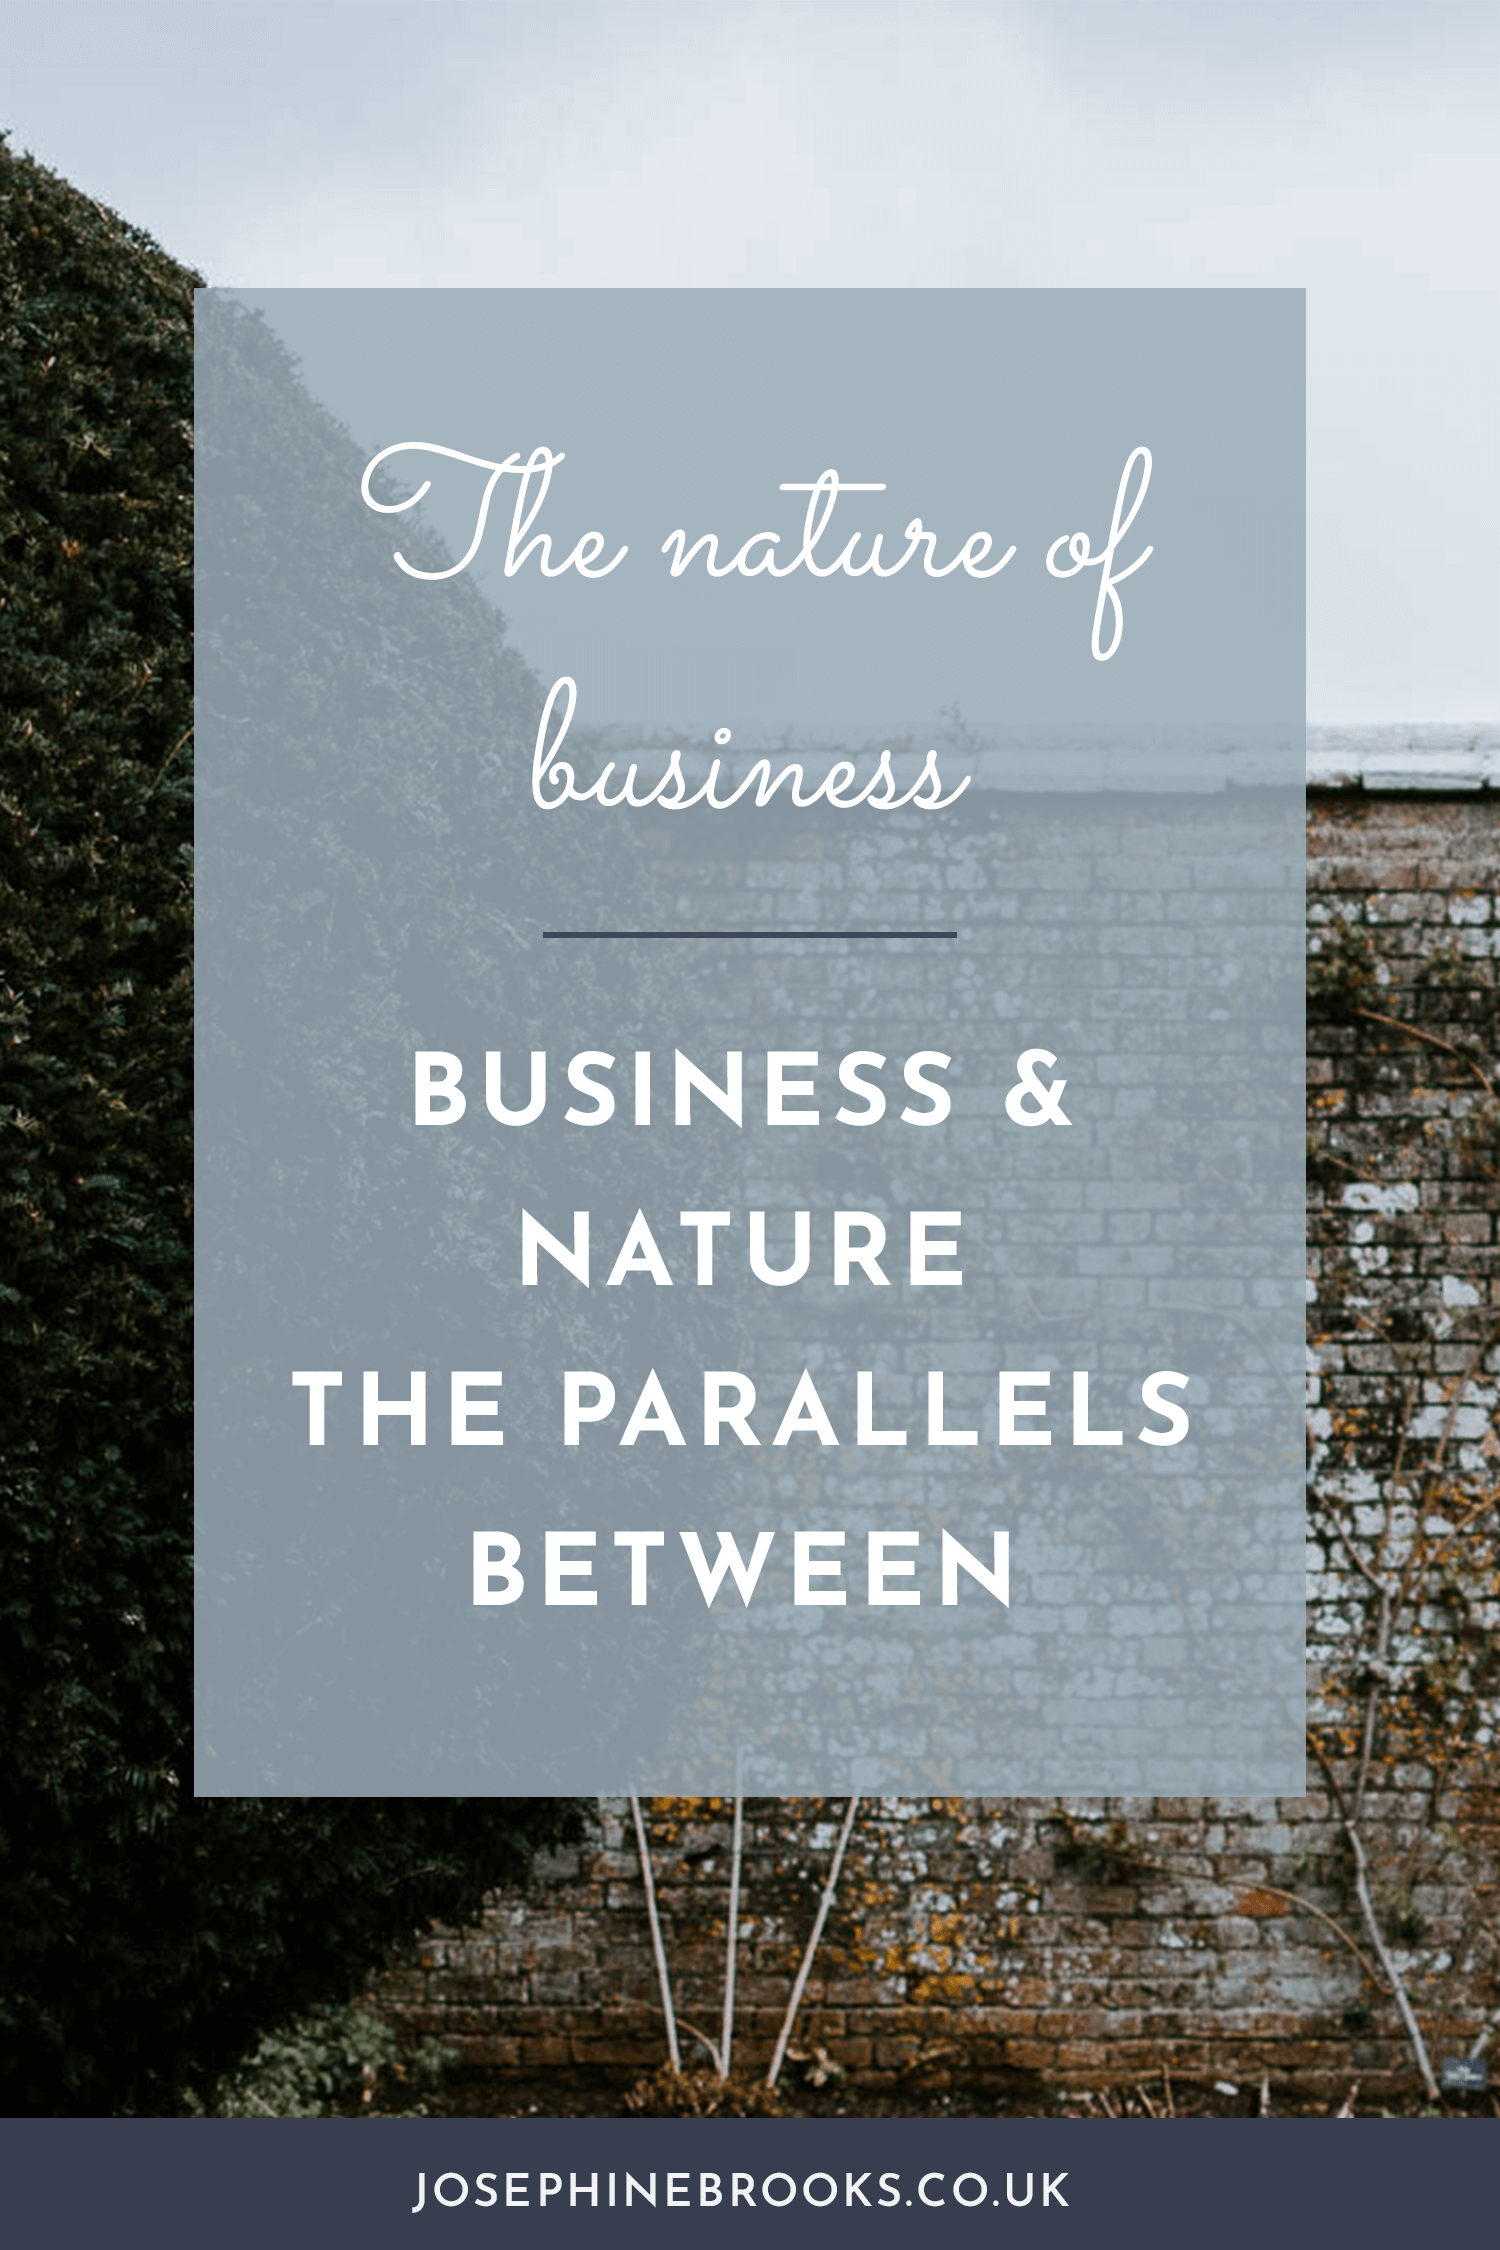 Business & Nature, the Parallels Between, Similarities between business and nature, Slow living and growing a creative business, being in sync with nature, getting outdoors when you're growing a creative business | Josephine Brooks